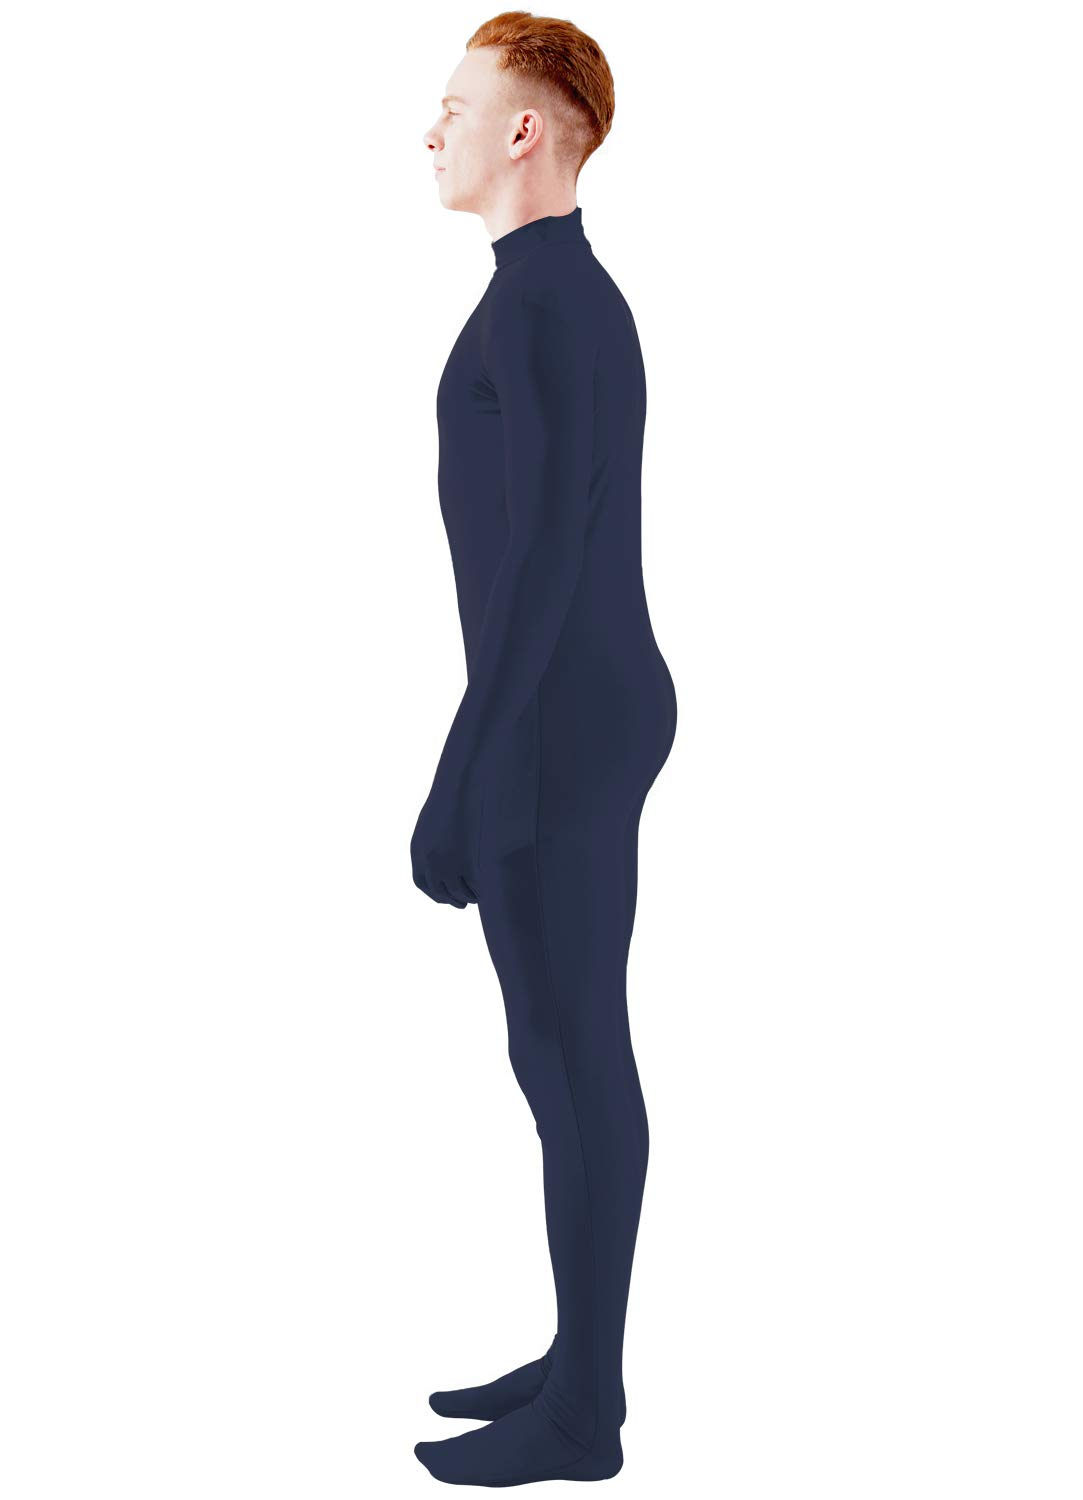 ac9a39283f1 Ensnovo Mens Mock Neck Full Body Unitard Spandex Zentai Suits Costumes  Navy